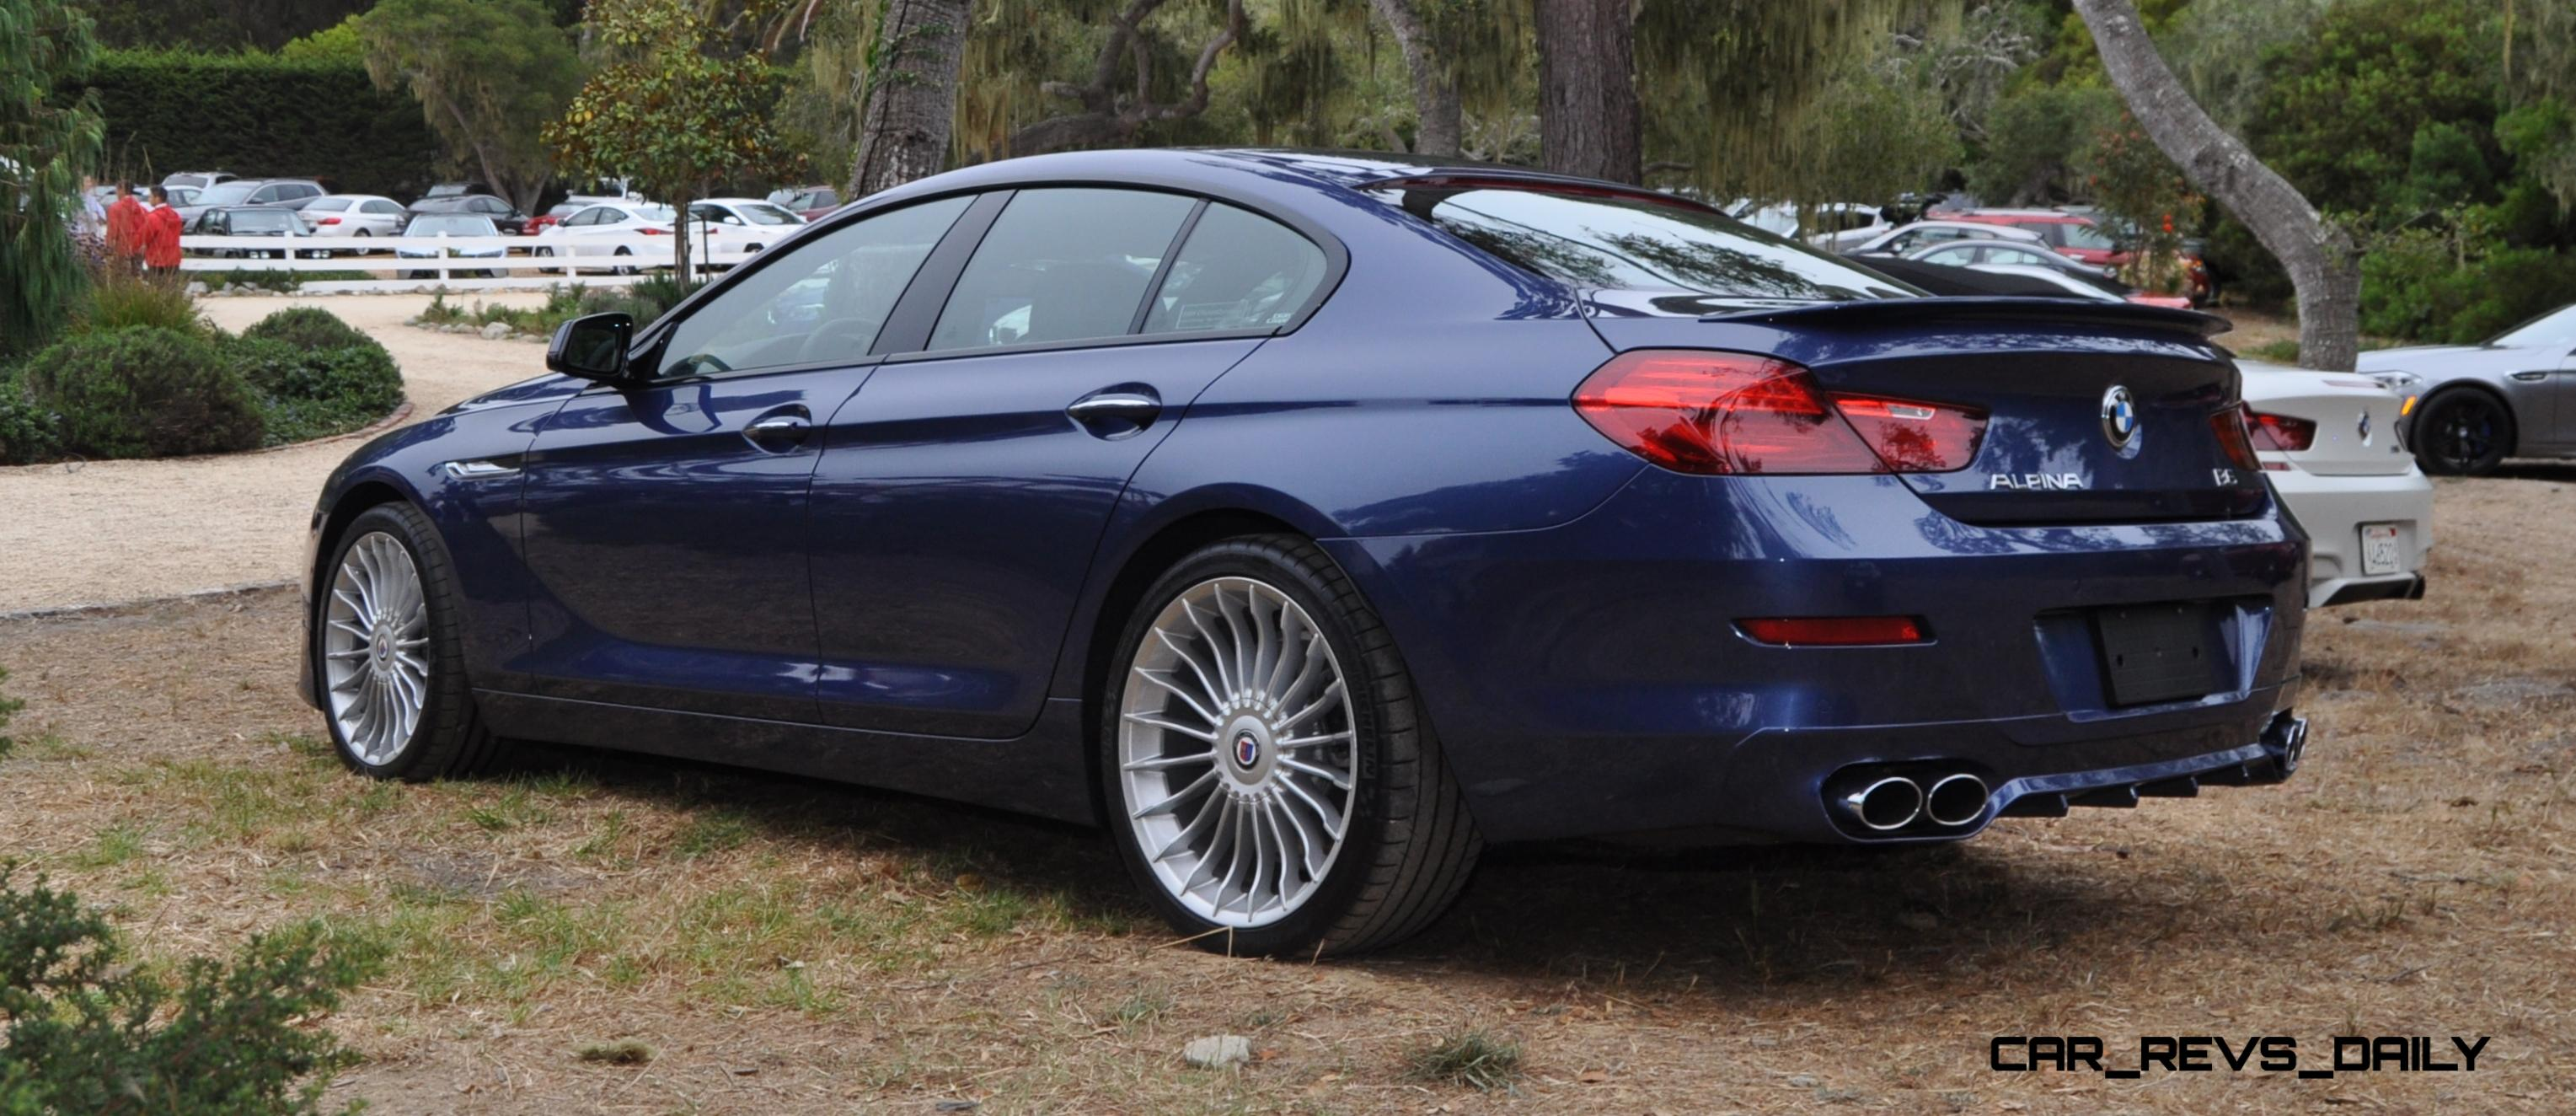 540HP 37s 2015 BMW ALPINA B6 XDrive Gran Coupe Is Now Available For USA Special Orders 23